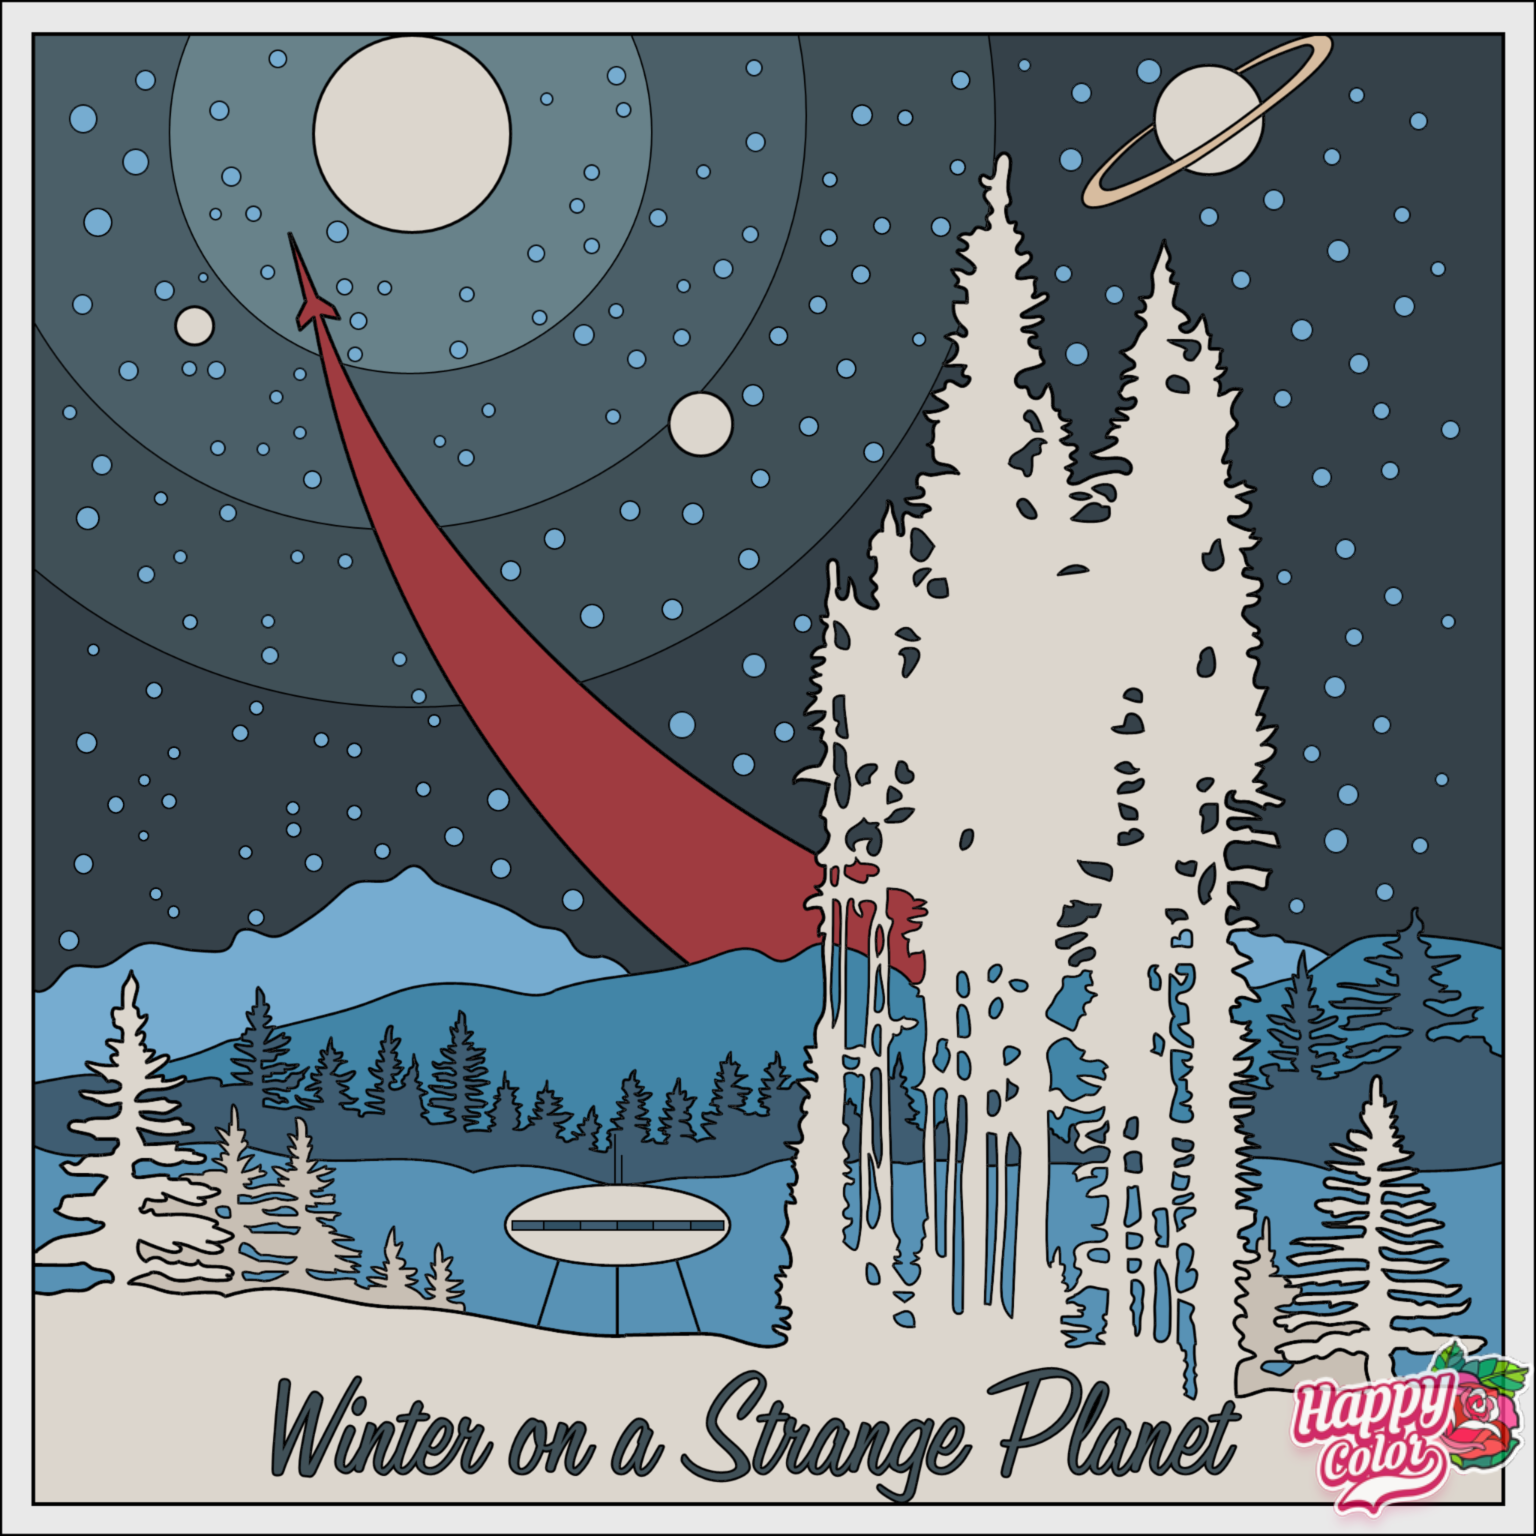 coloring book app image of a travel poster for winter on a strange planet